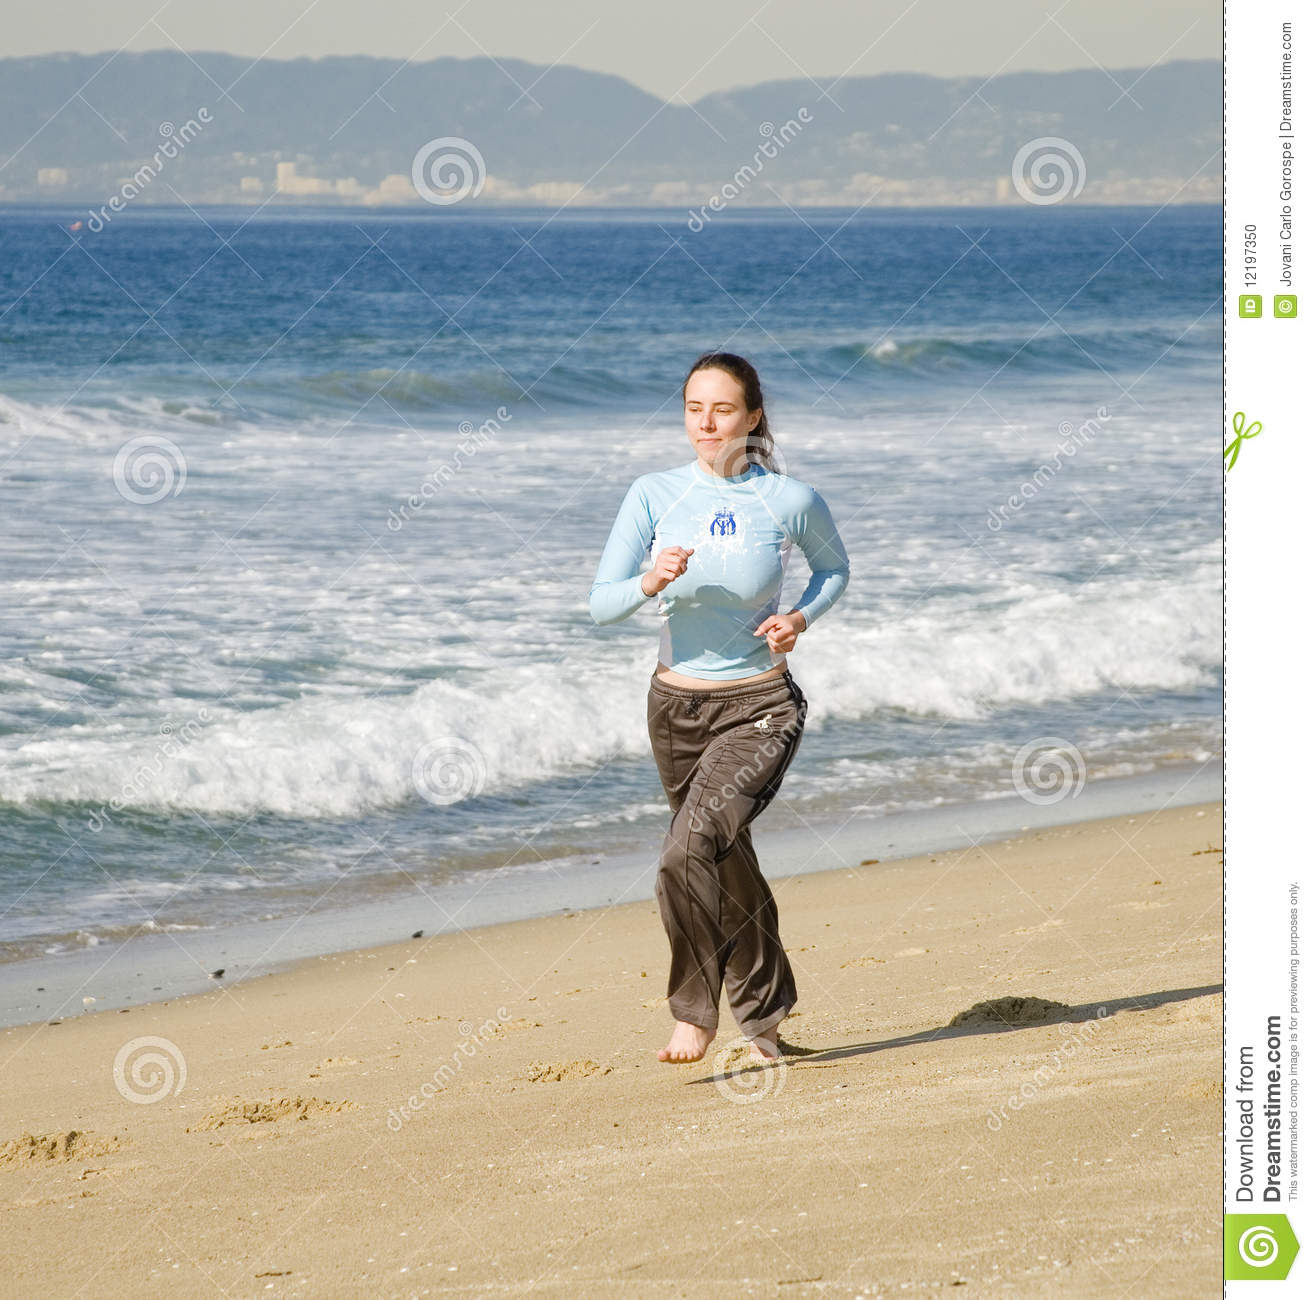 Girl Running at the Beach